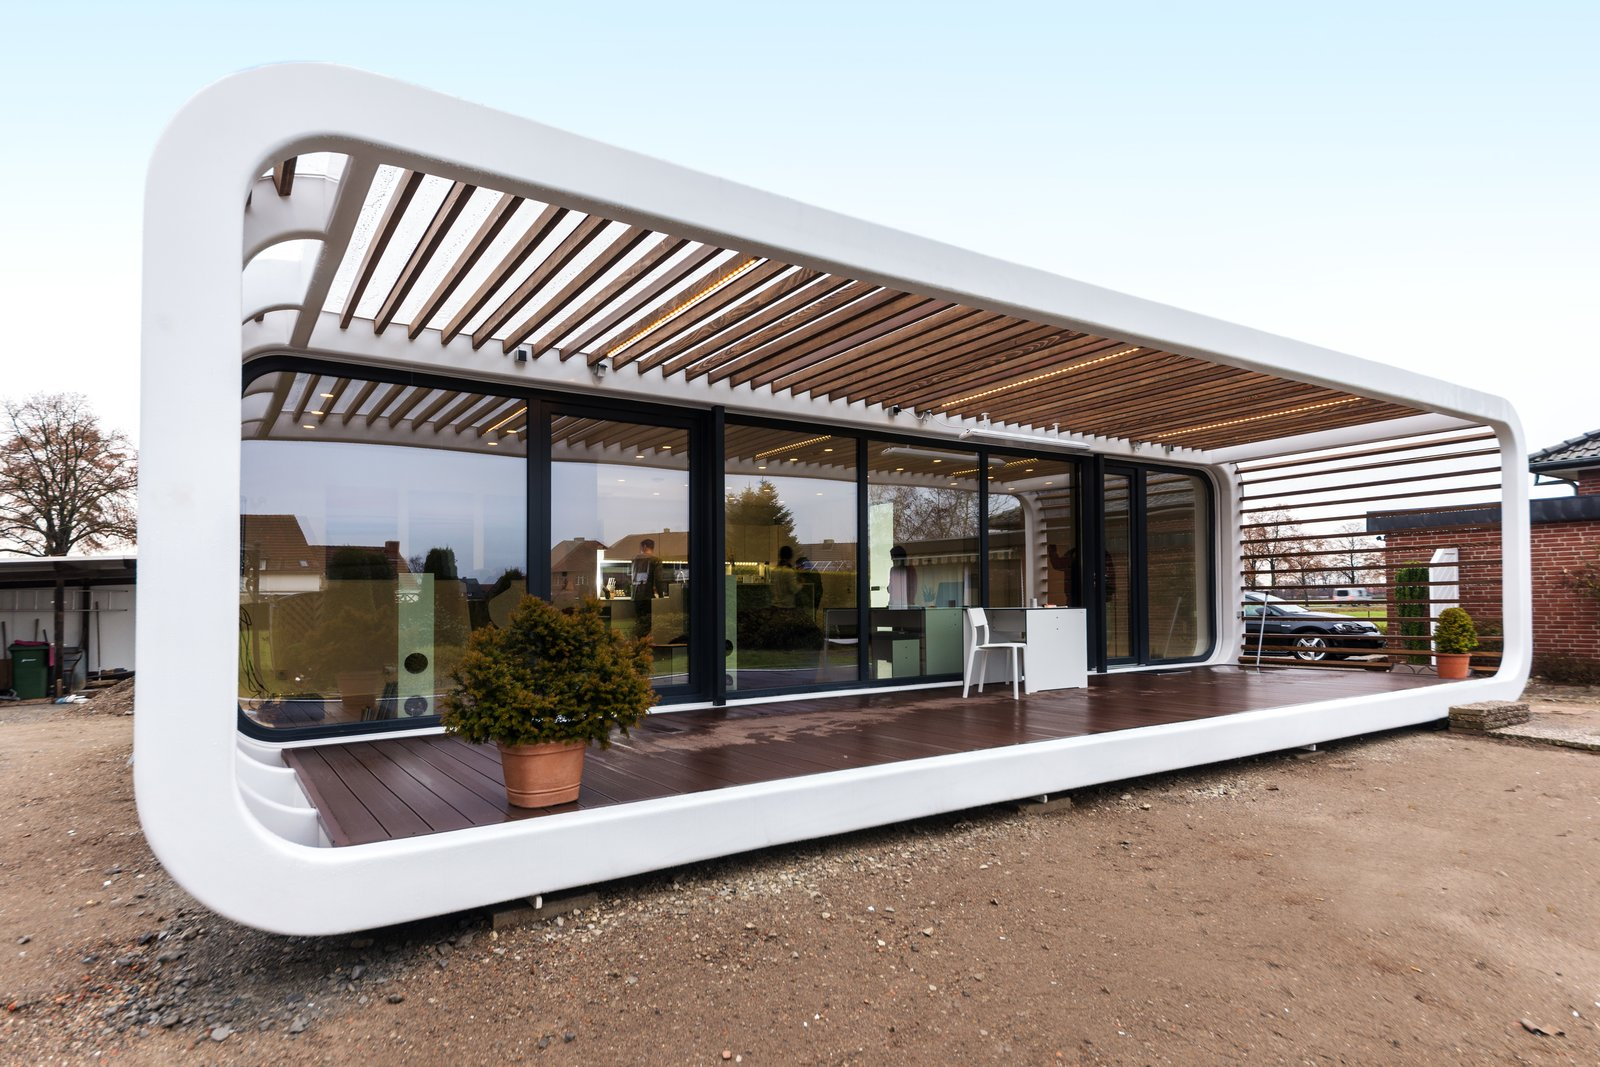 Meet the Prefab Unit That's Smart, Mobile, and Sustainable » Valerie Moss Homes Design on madison homes, blu homes, grass homes, manchester homes, teal homes, spencer homes, ski homes, green homes, johnson homes, clay homes, chocolate homes,